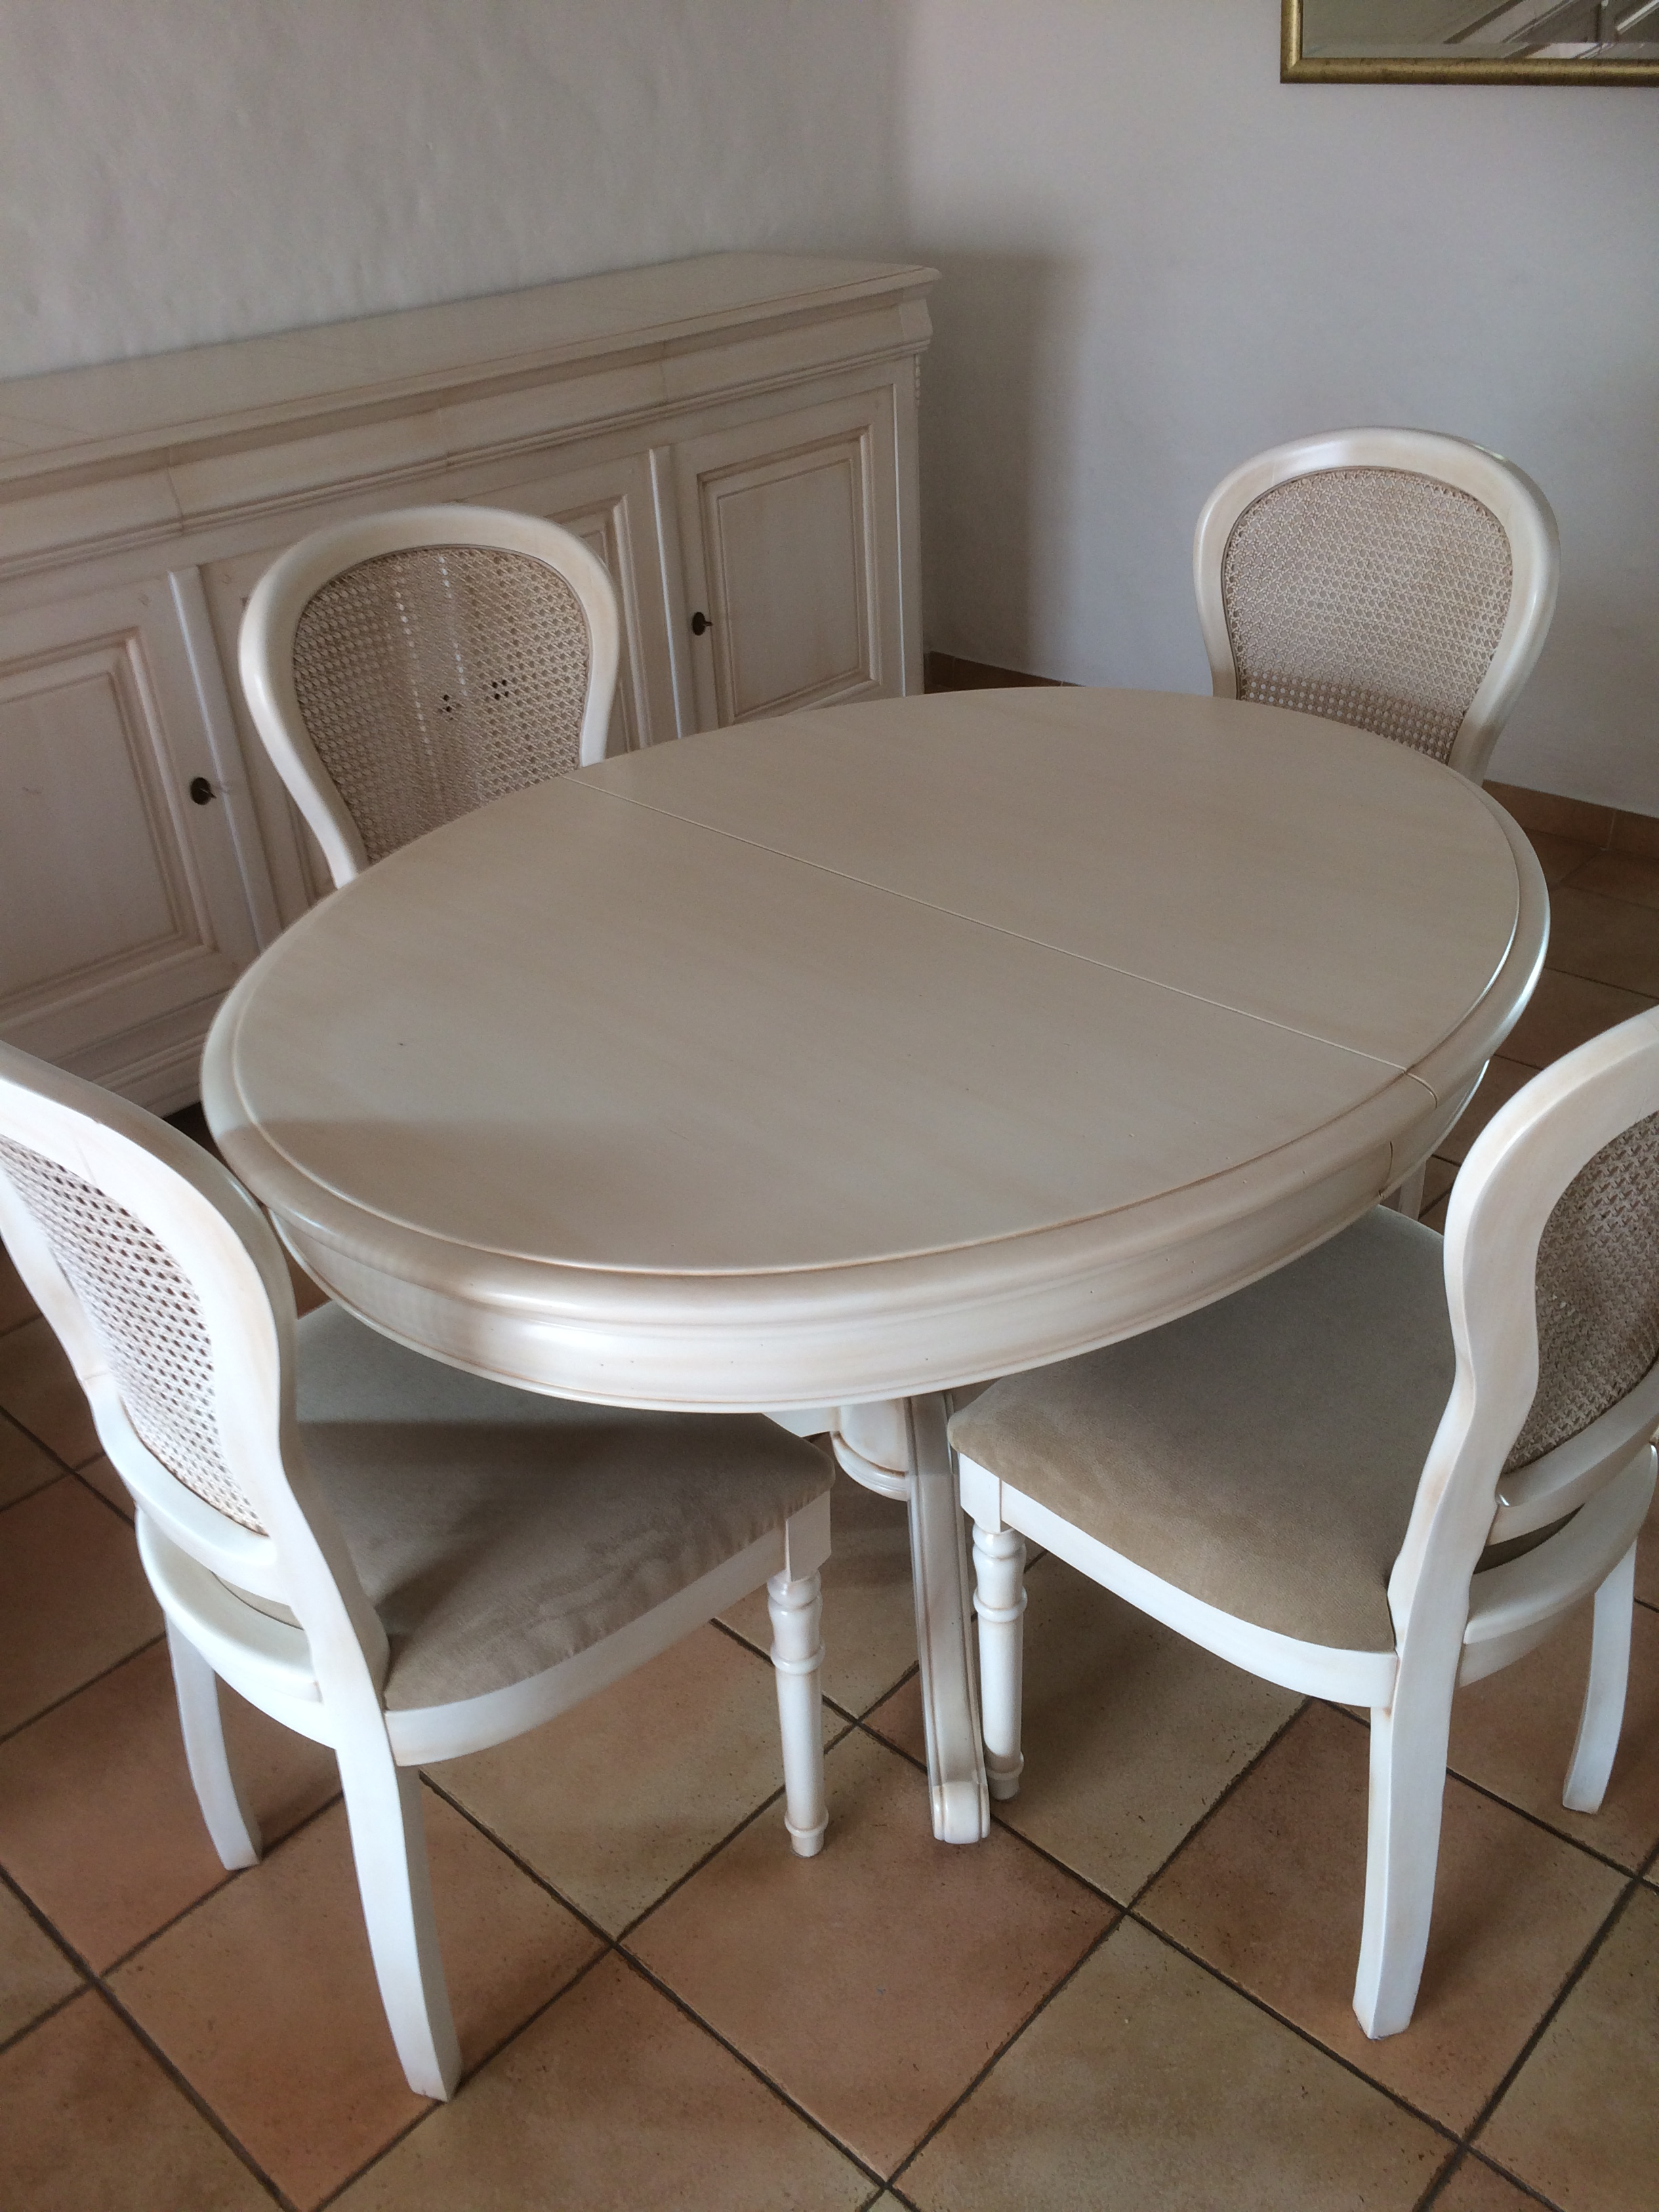 R alisations salle manger louis philippe carry le rouet for Chaise de salle a manger louis philippe